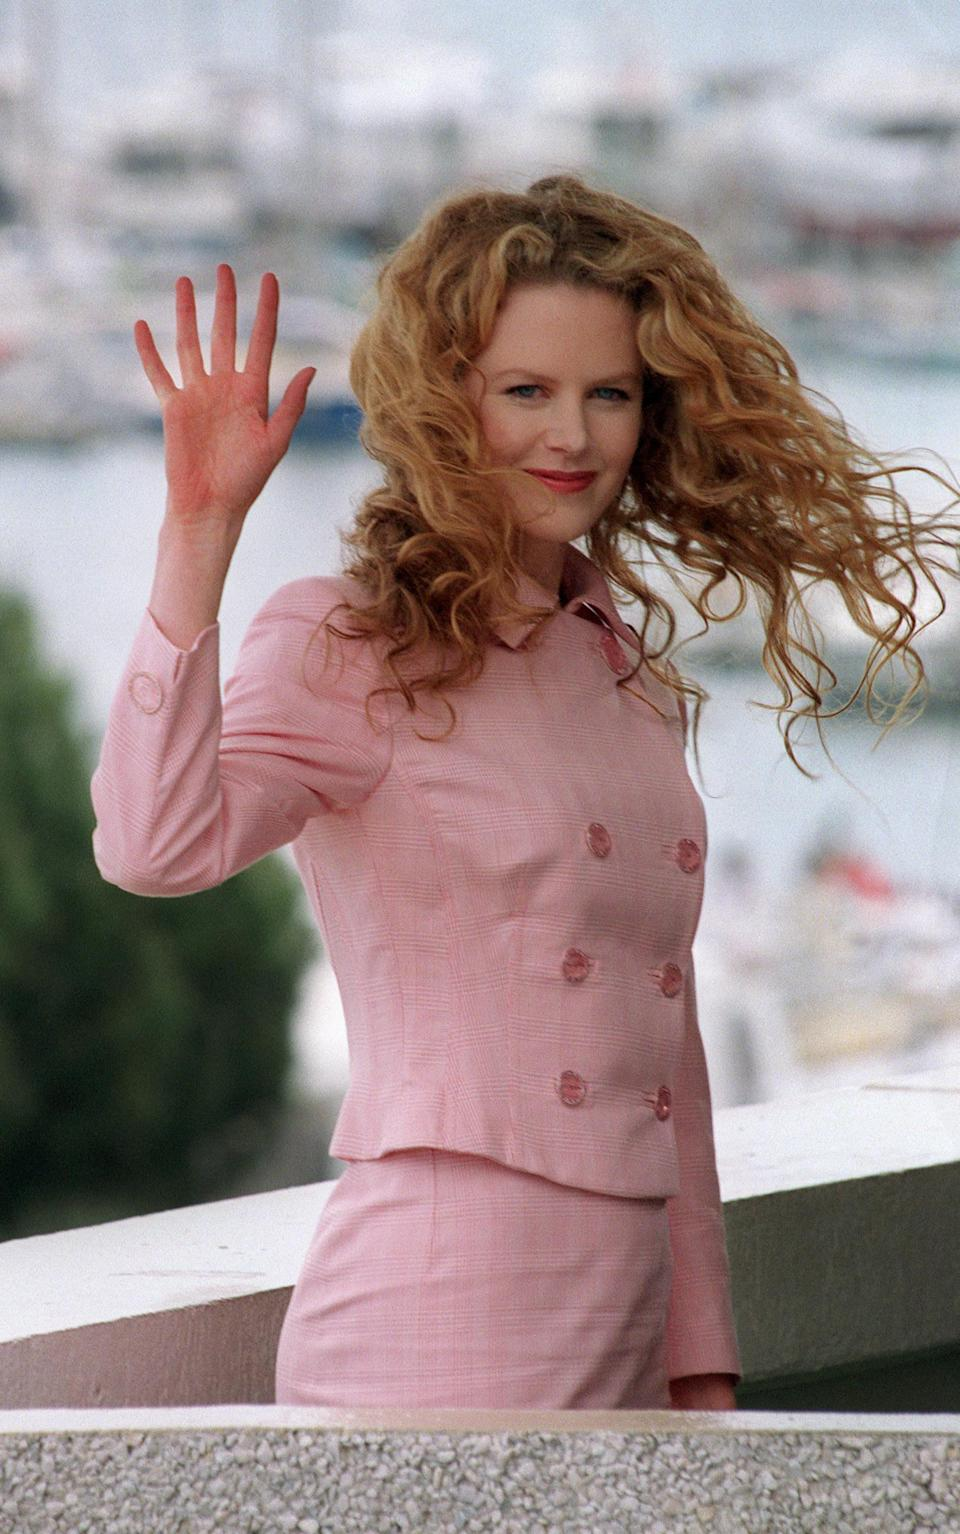 Nicole waving at an event